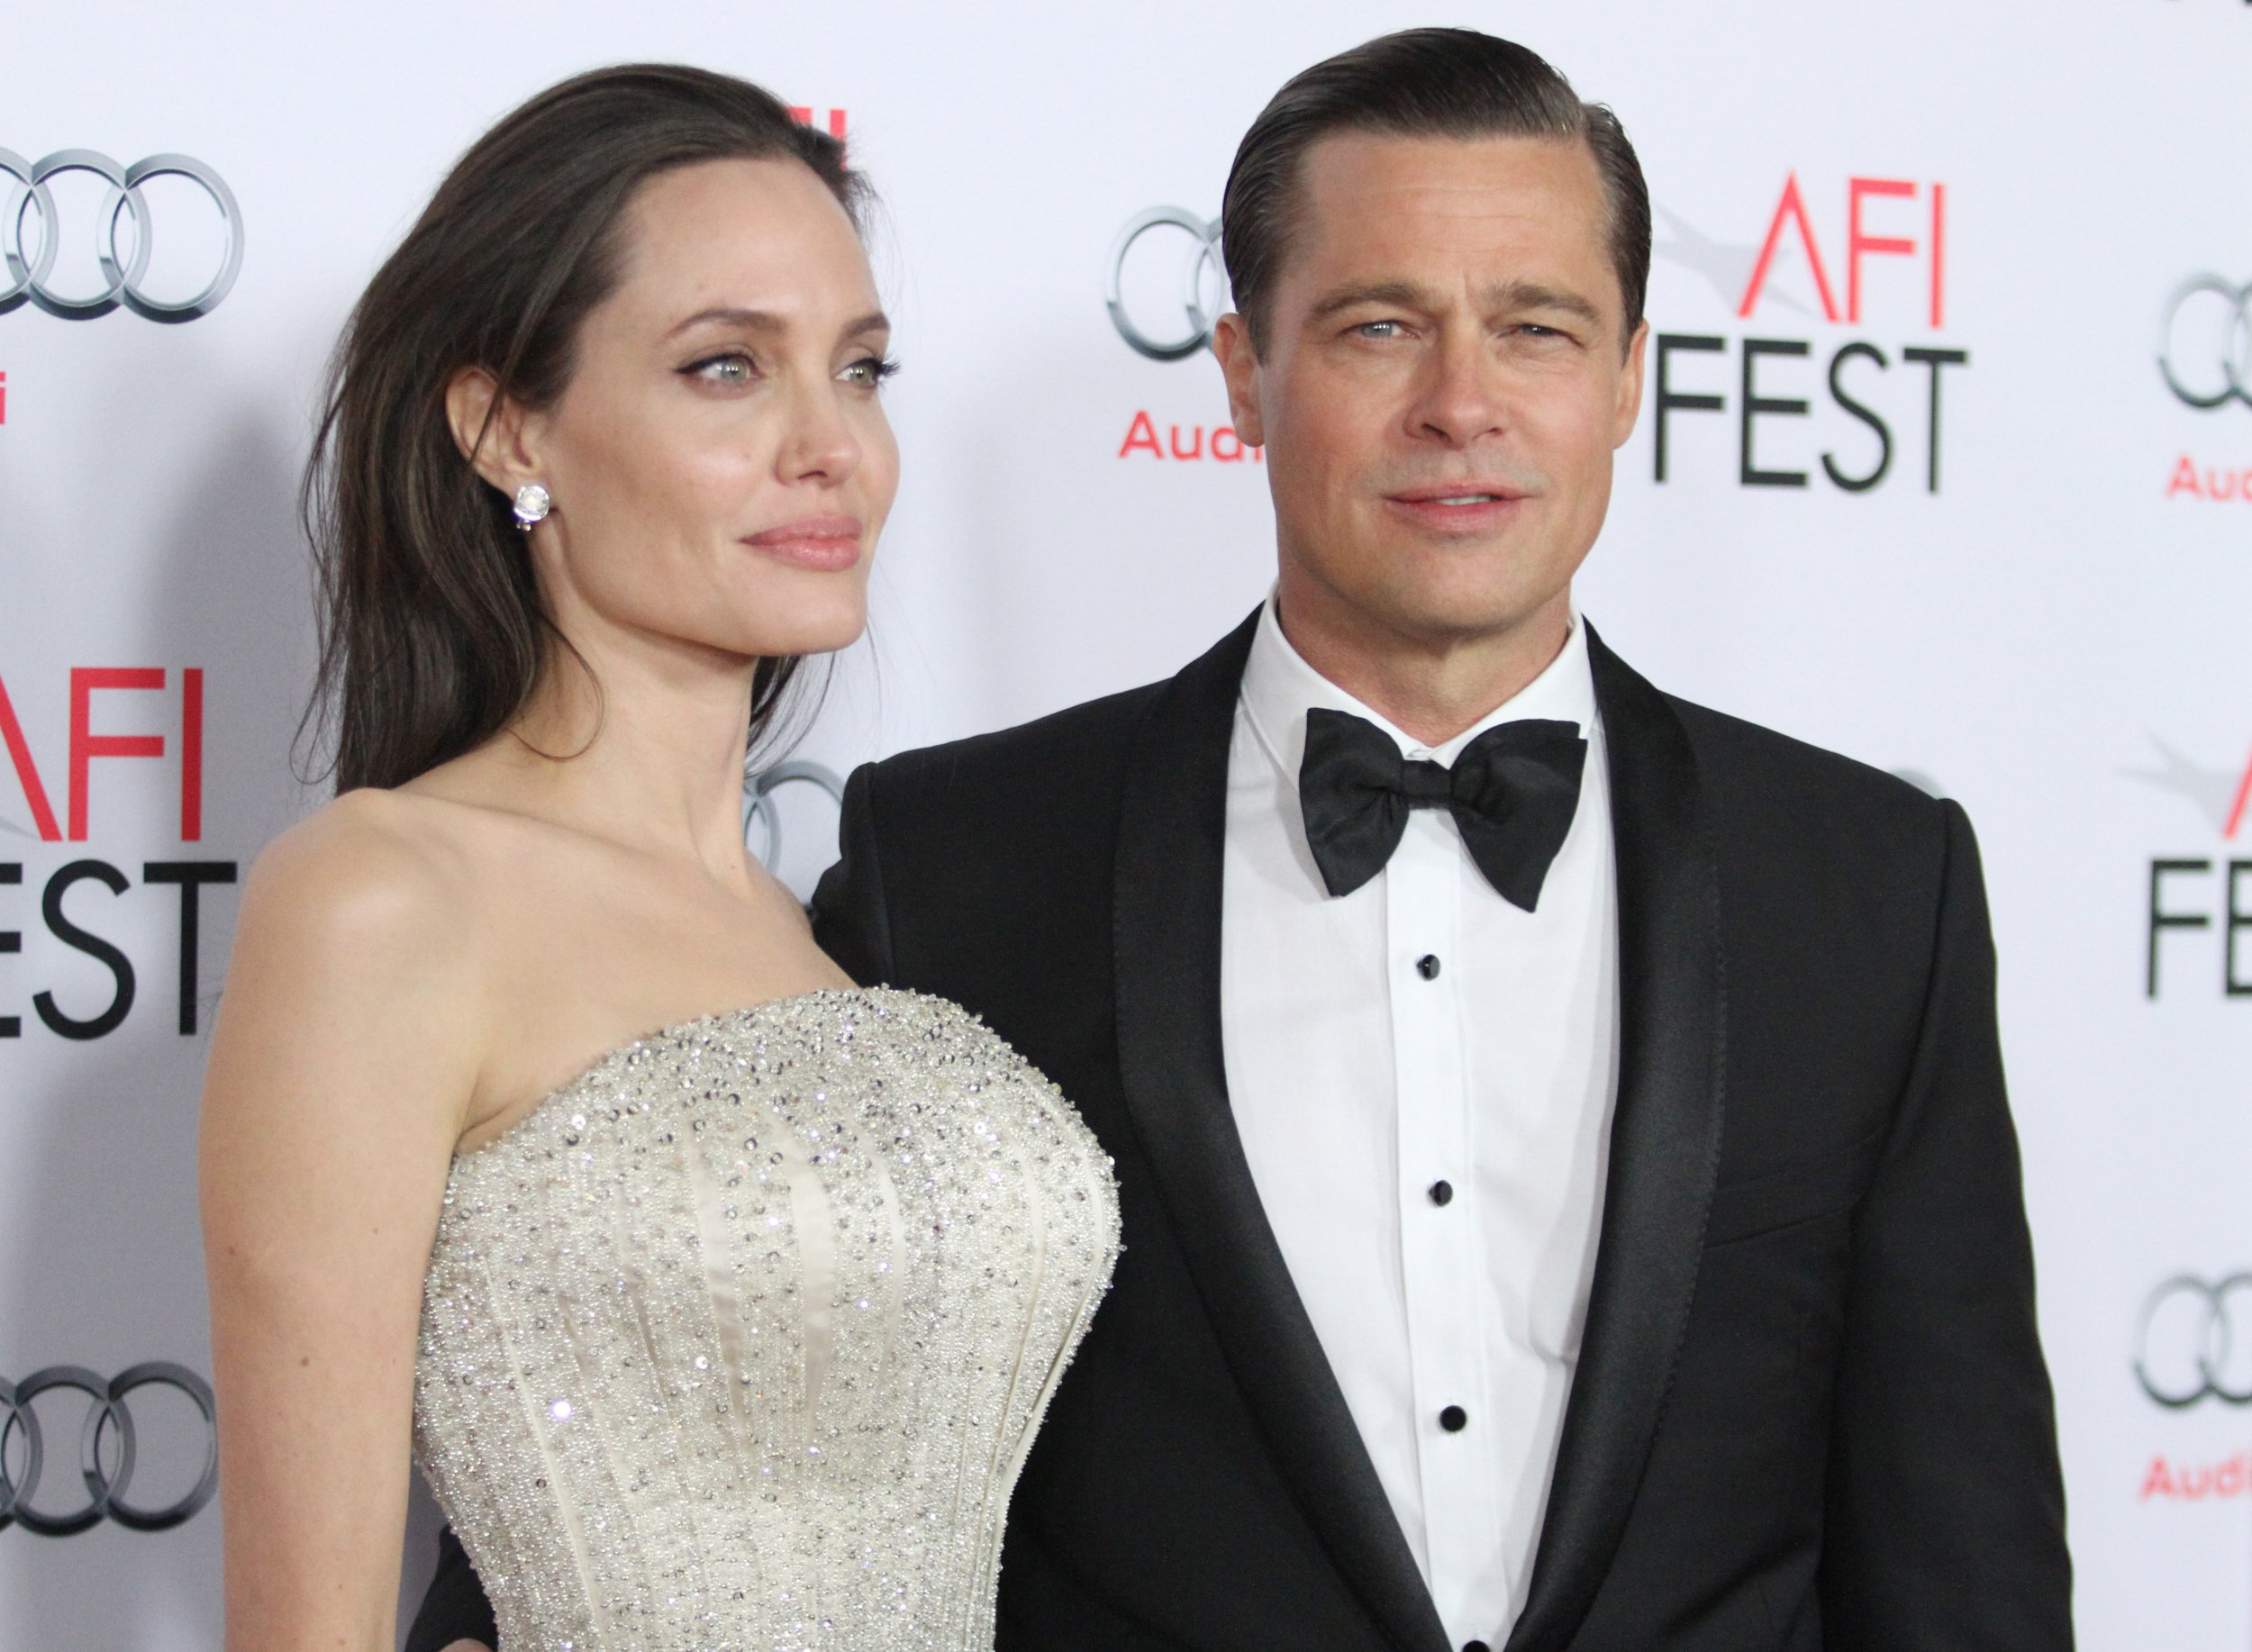 Mandatory Credit: Photo by Matt Baron/REX/Shutterstock (5354923u) Angelina Jolie and Brad Pitt 'By the Sea' film premiere, Los Angeles, America - 05 Nov 2015